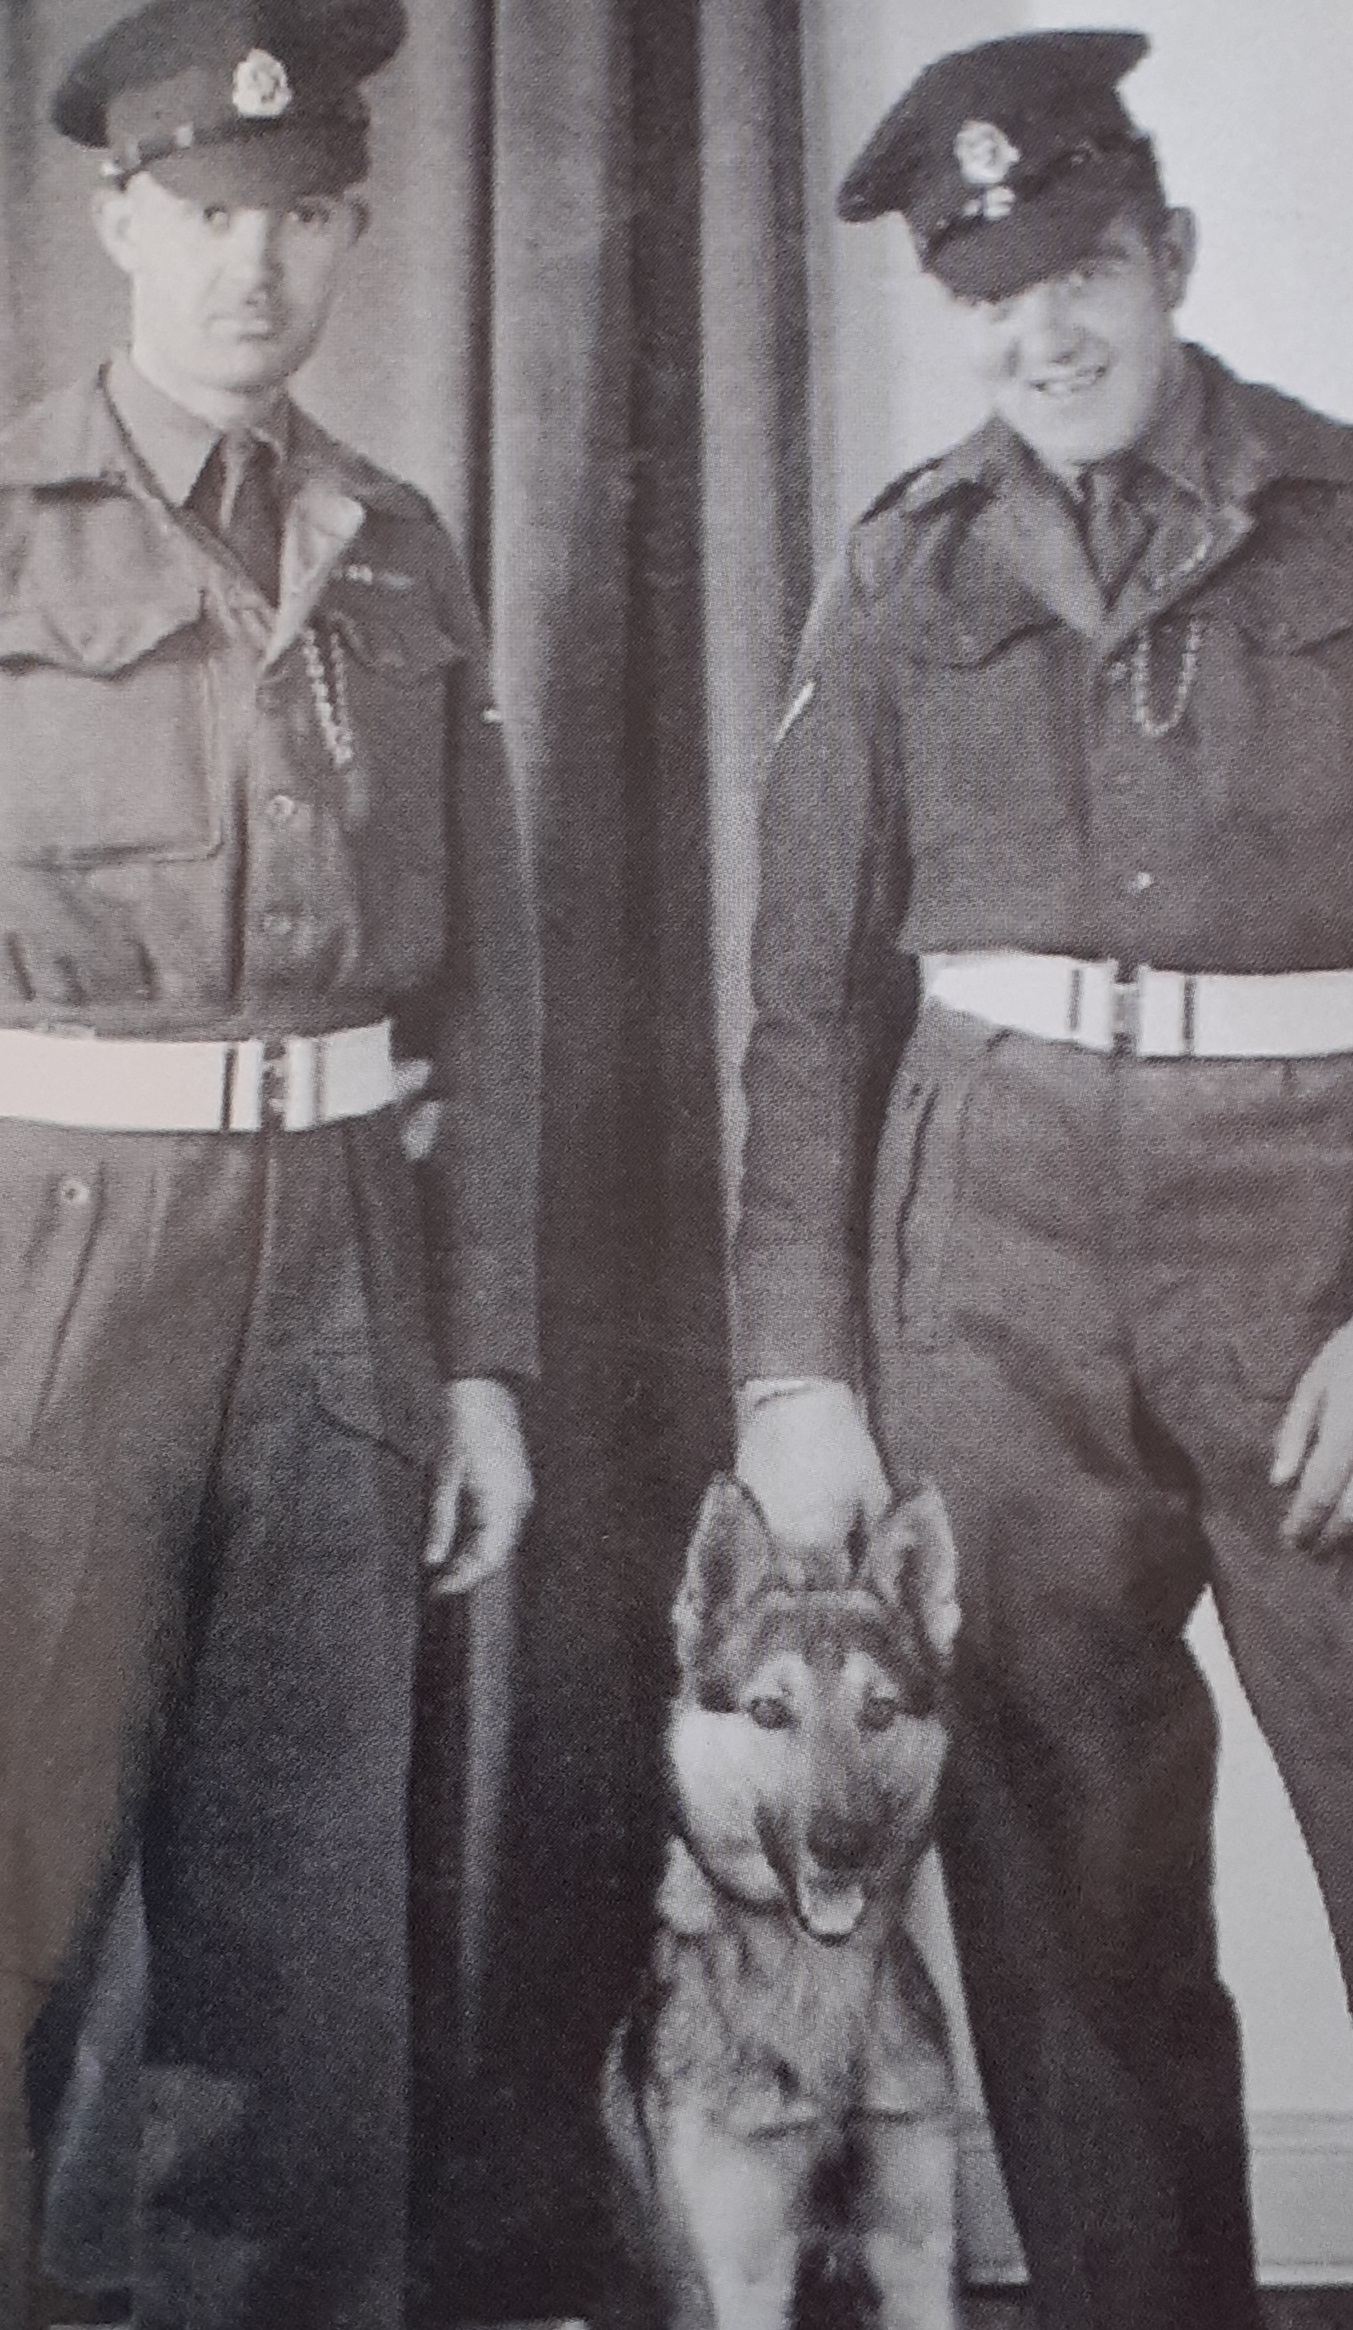 Military police Jim and Des with Tref the dog.